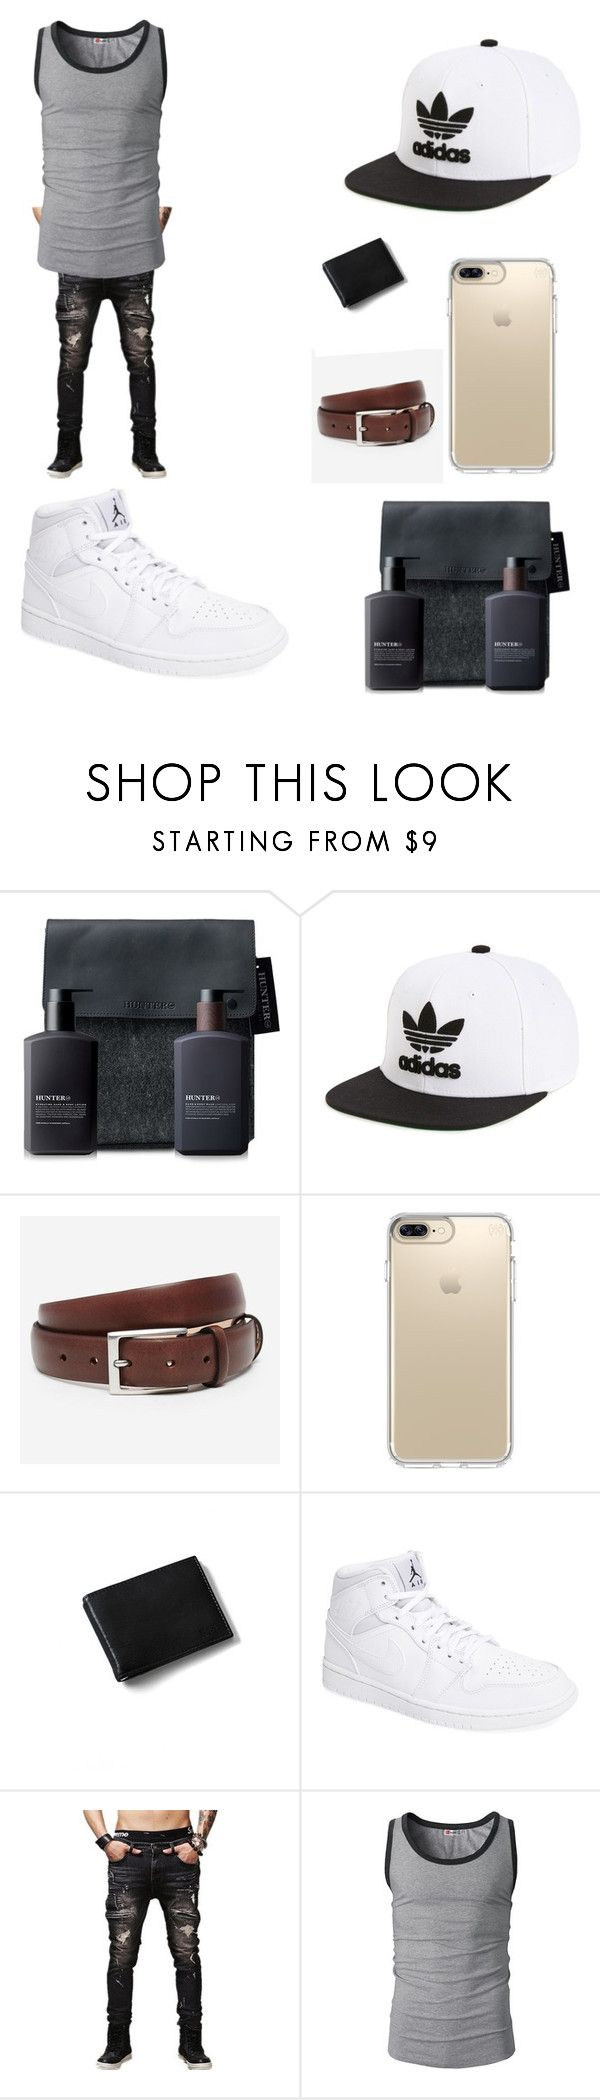 """men's night out"" by babygirl980 ❤ liked on Polyvore featuring 21 Men, adidas Originals, Bonobos, Speck, Lands' End, NIKE, men's fashion and menswear"